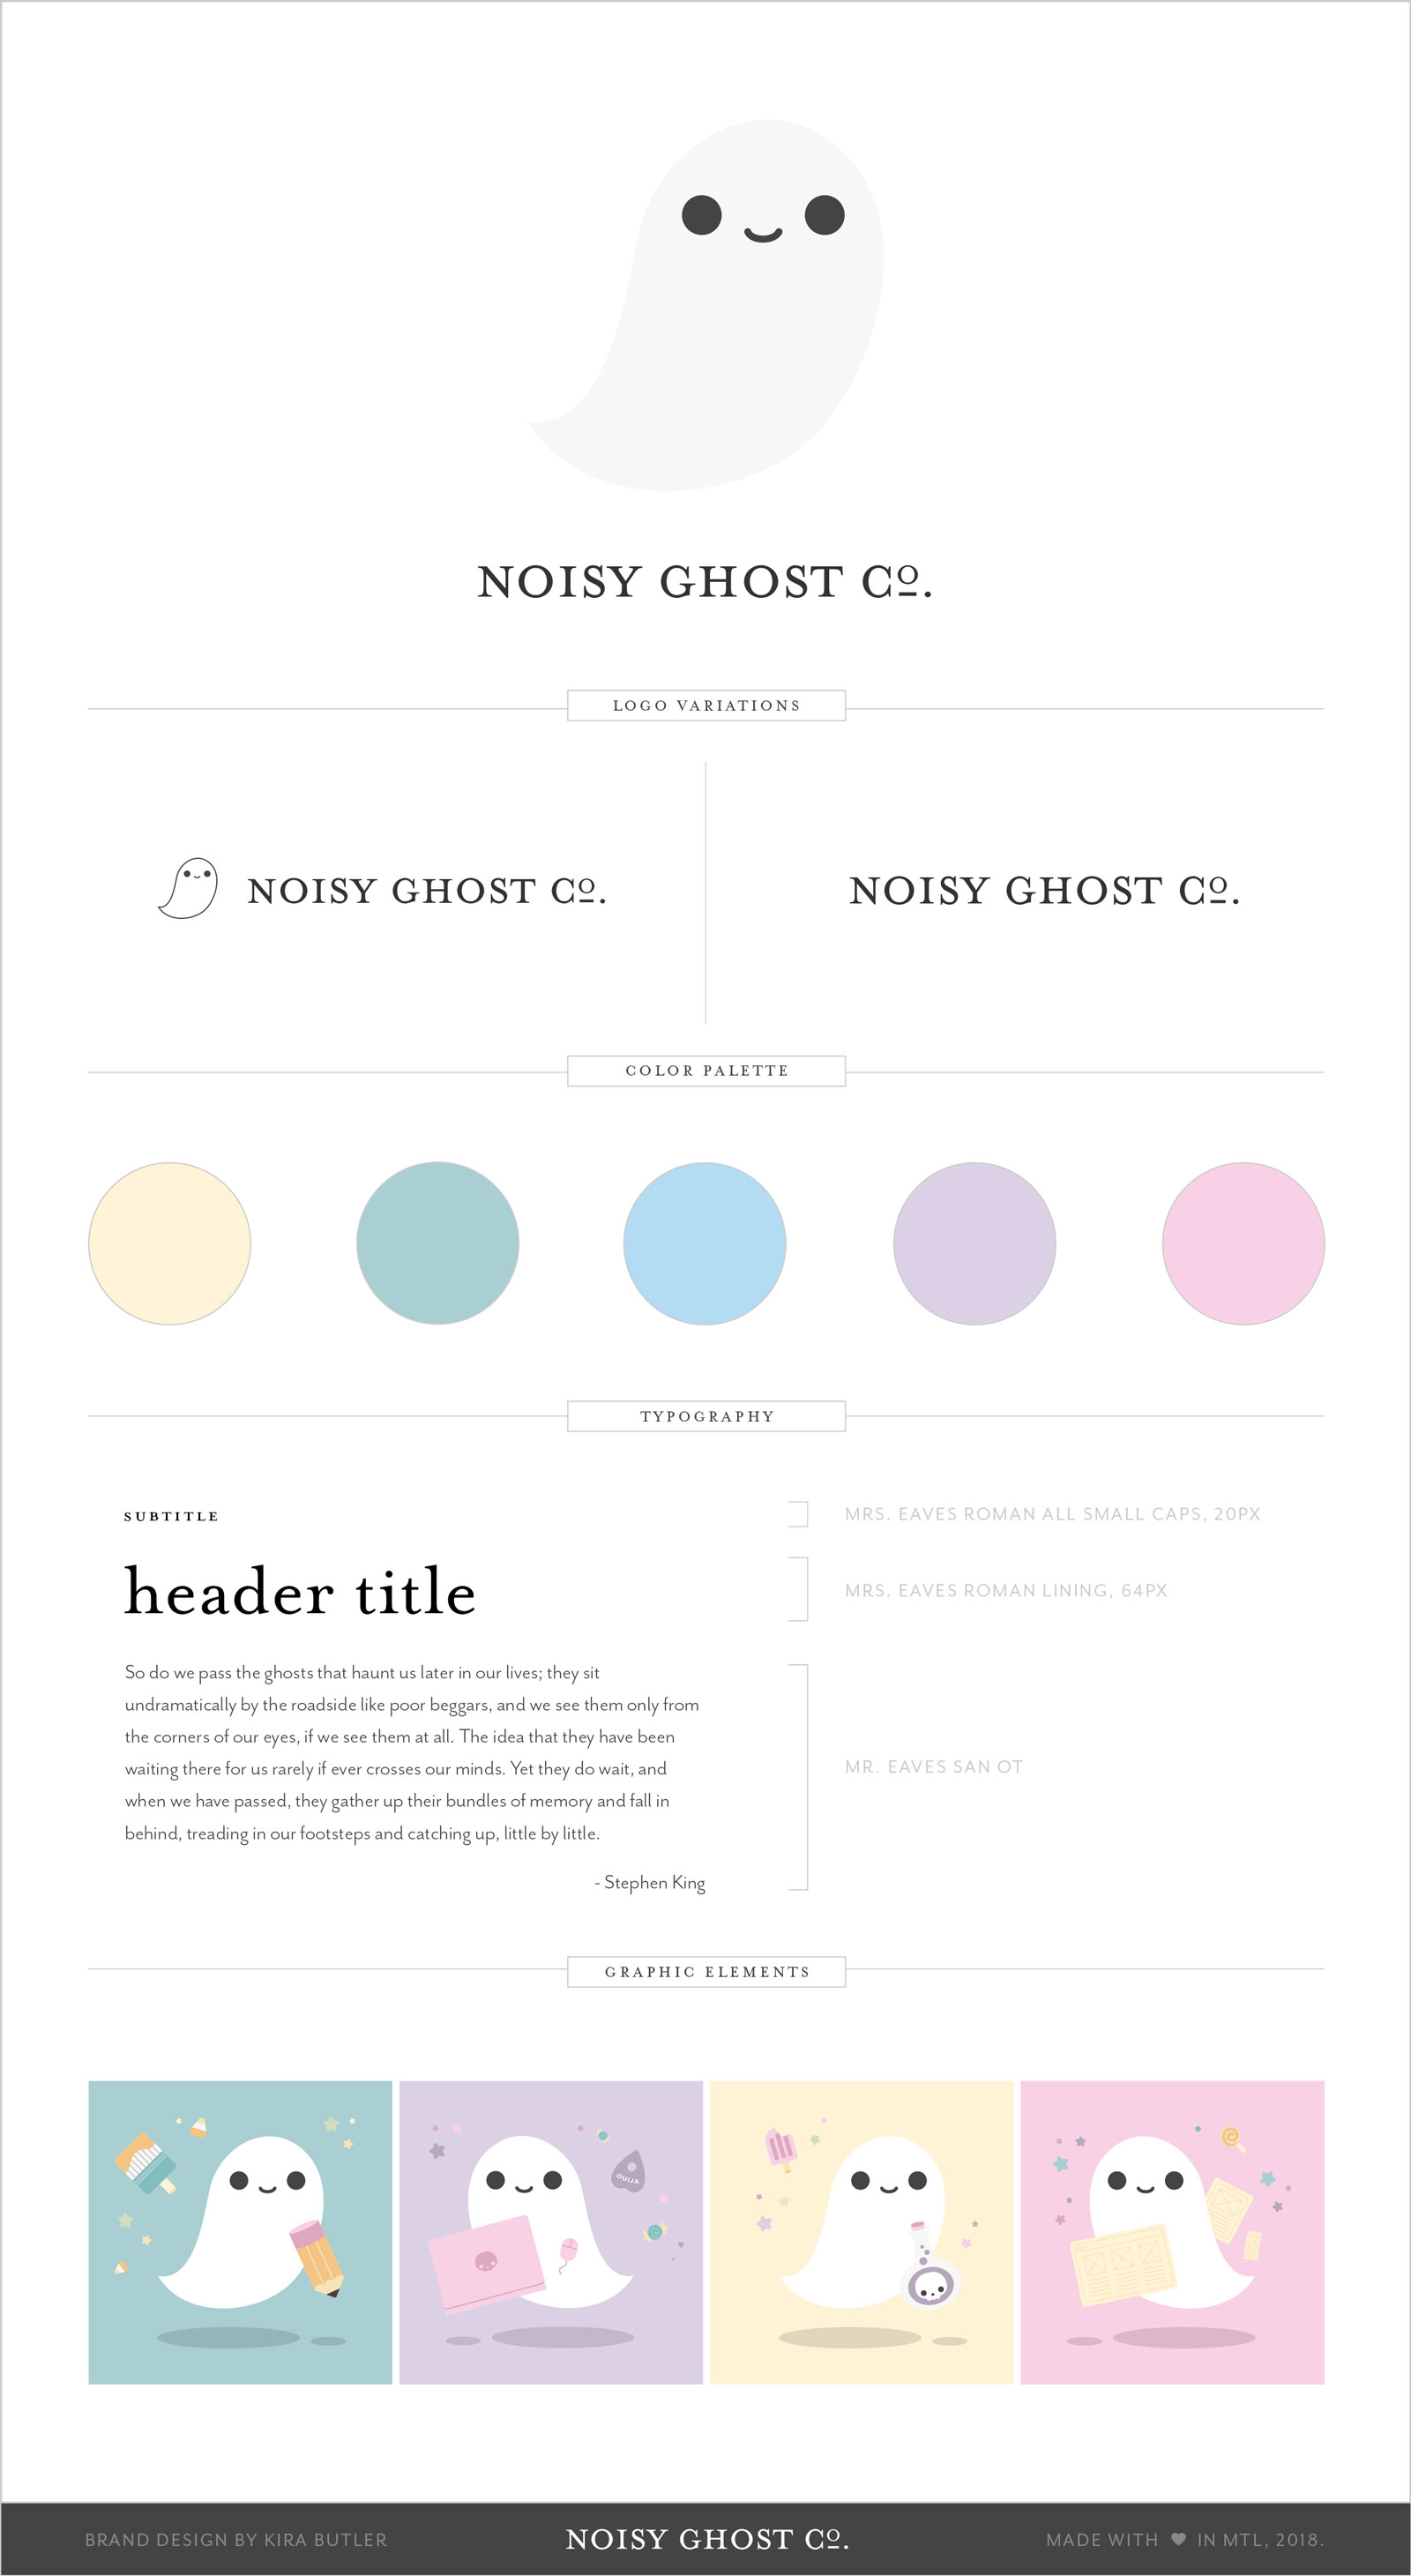 Noisy Ghost Co. Brand and Style Guide